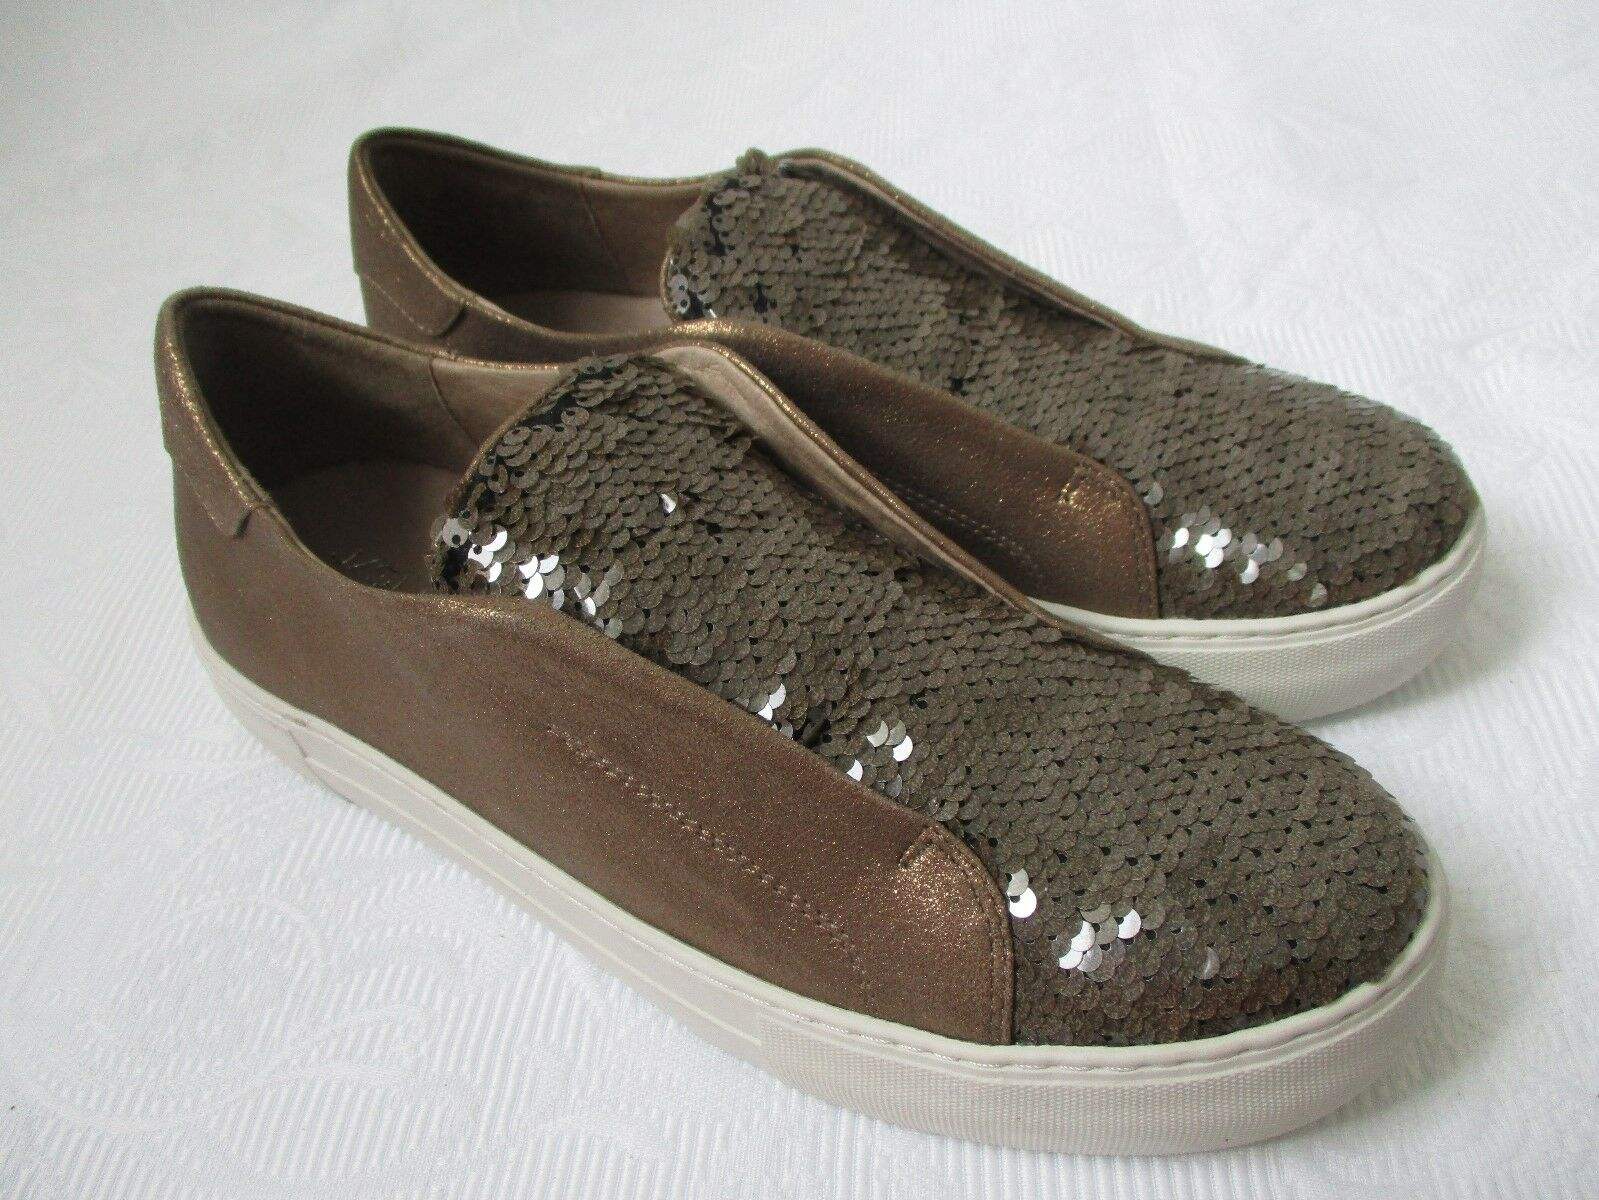 J SLIDES NYC ADAZE METALLIC BRONZE SEQUIN SNEAKERS SIZE 8 1/2 - NEW